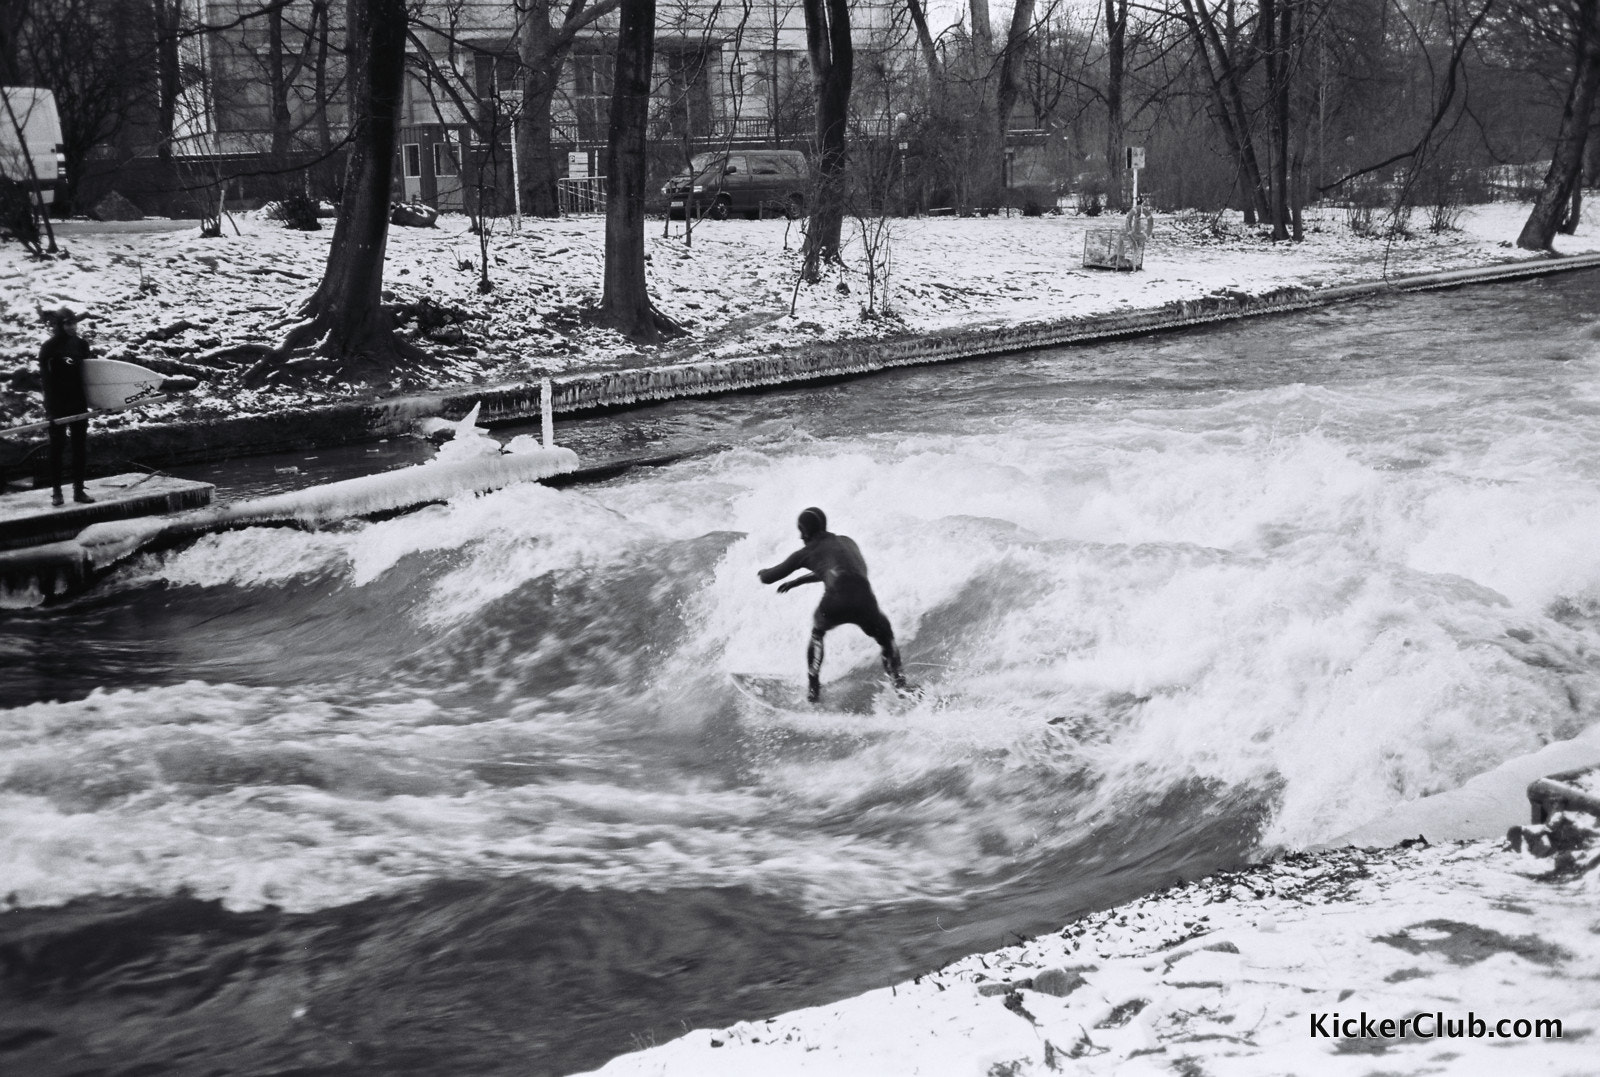 Photograph Munich River Surfing in Winter by Andrew Guan on 500px